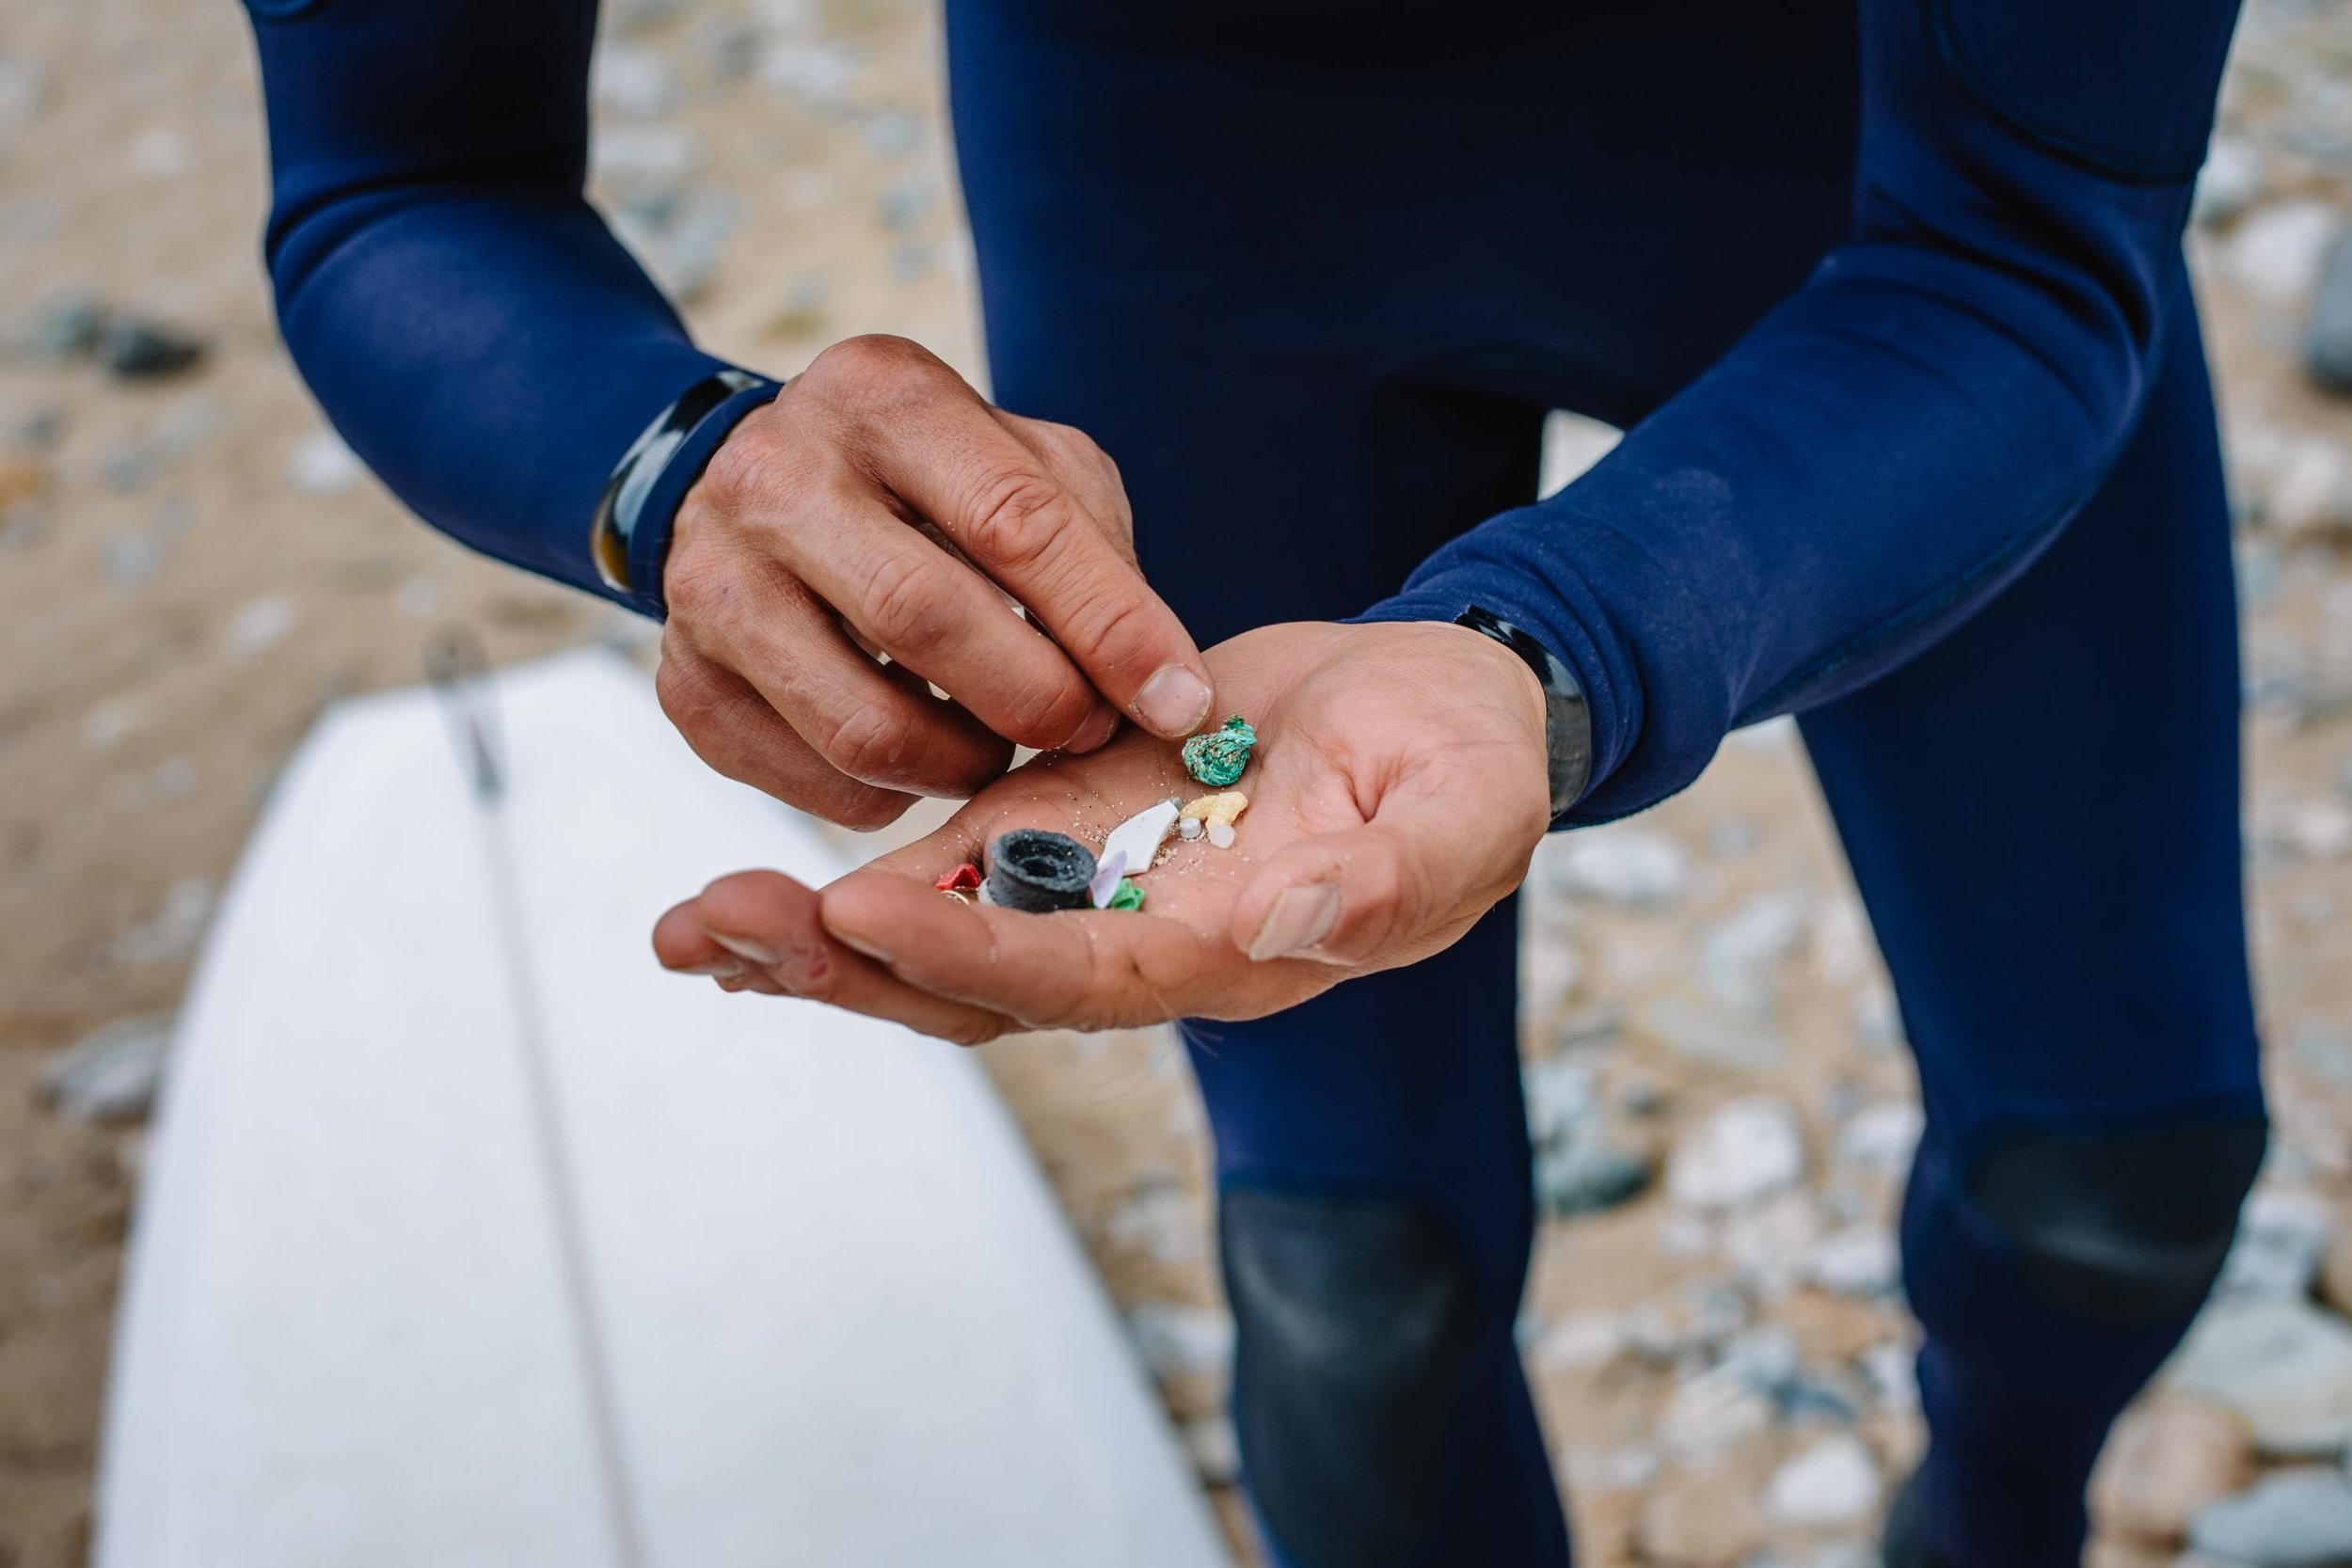 Hugo Tagholm, Chief Executive of Surfers Against Sewage, holds pieces of plastic pollution and other litter picked up at Porthtowan Beach. St Agnes, Cornwall, UK. 29th May 2018.